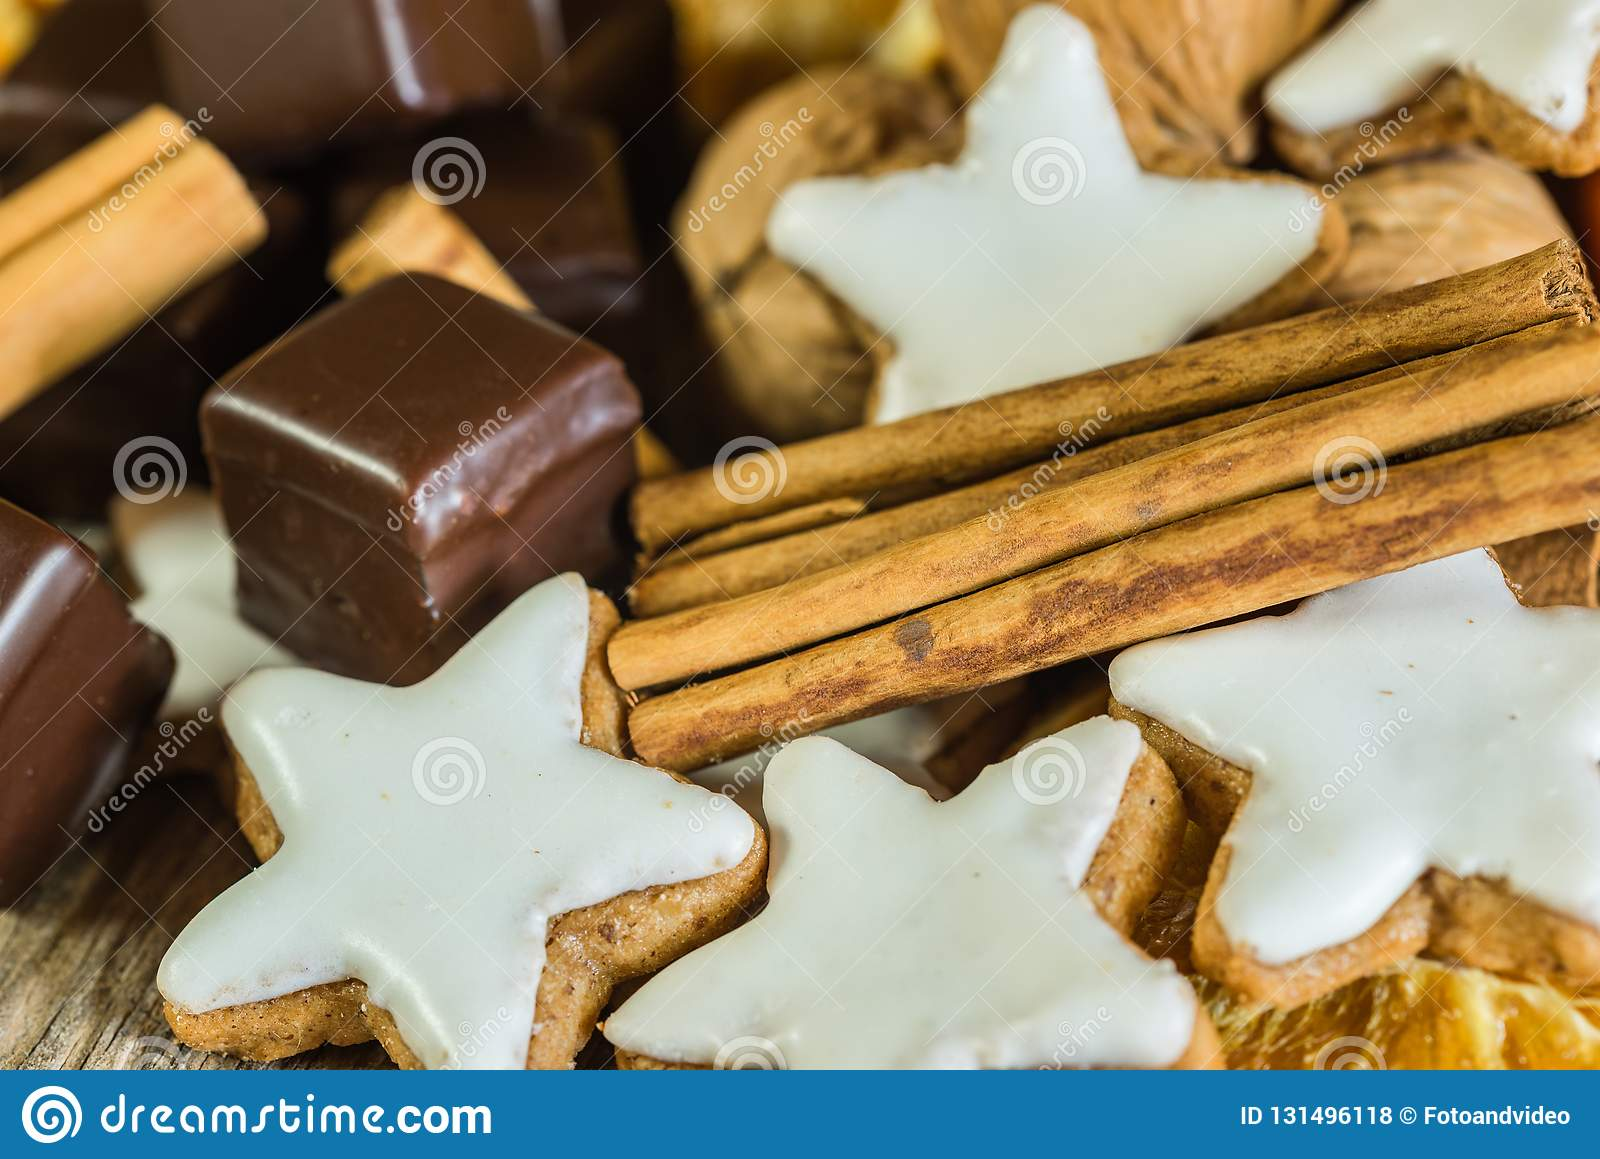 Star Shape Cookies Chocolates Nuts And Cinnamon Christmas Food